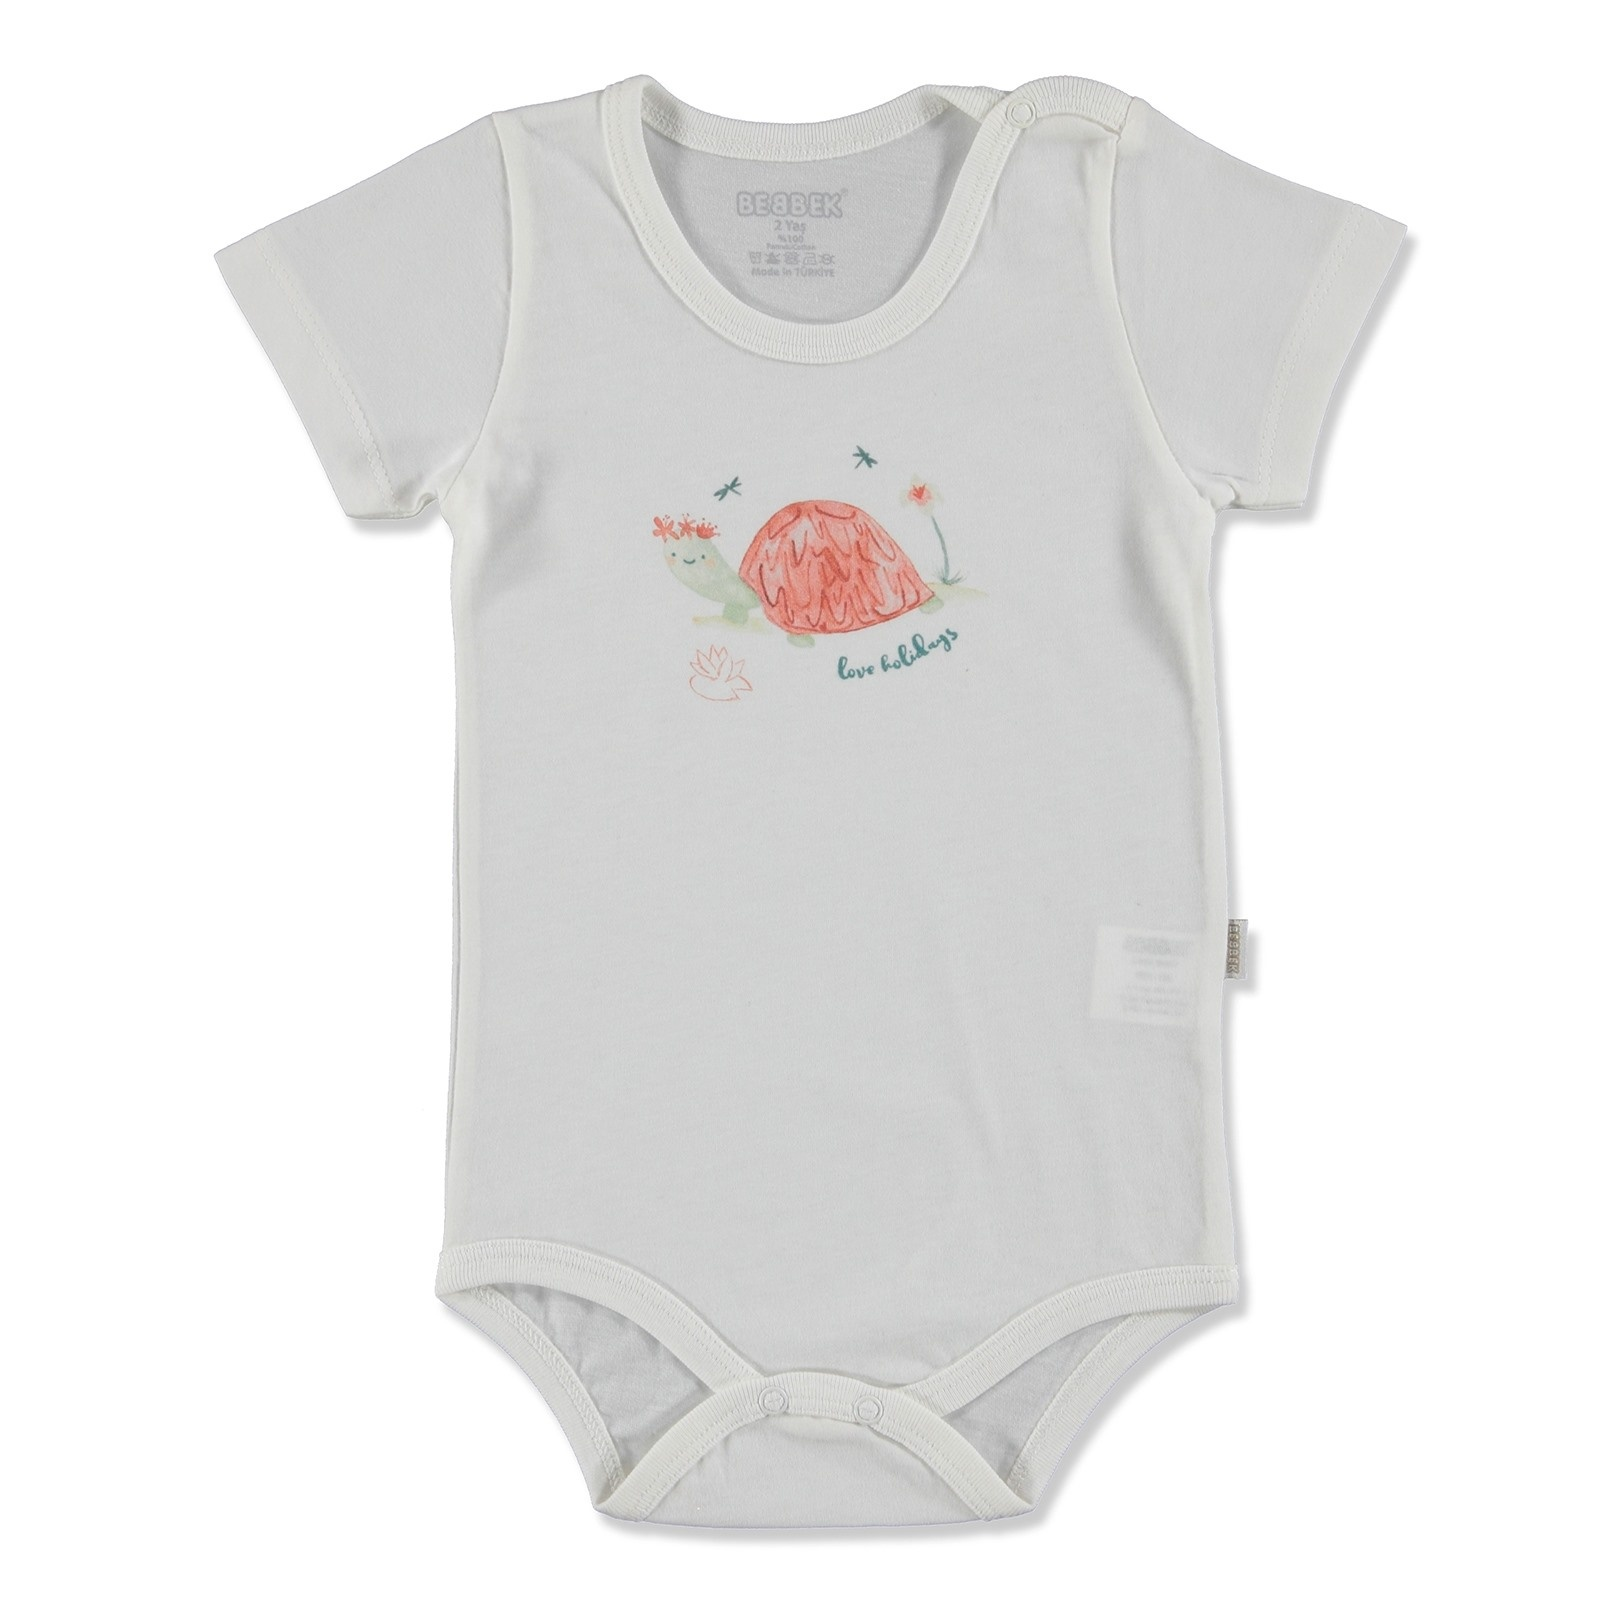 Ebebek Bebbek Summer Baby Girl Love Supreme Crew-Neck Bodysuit